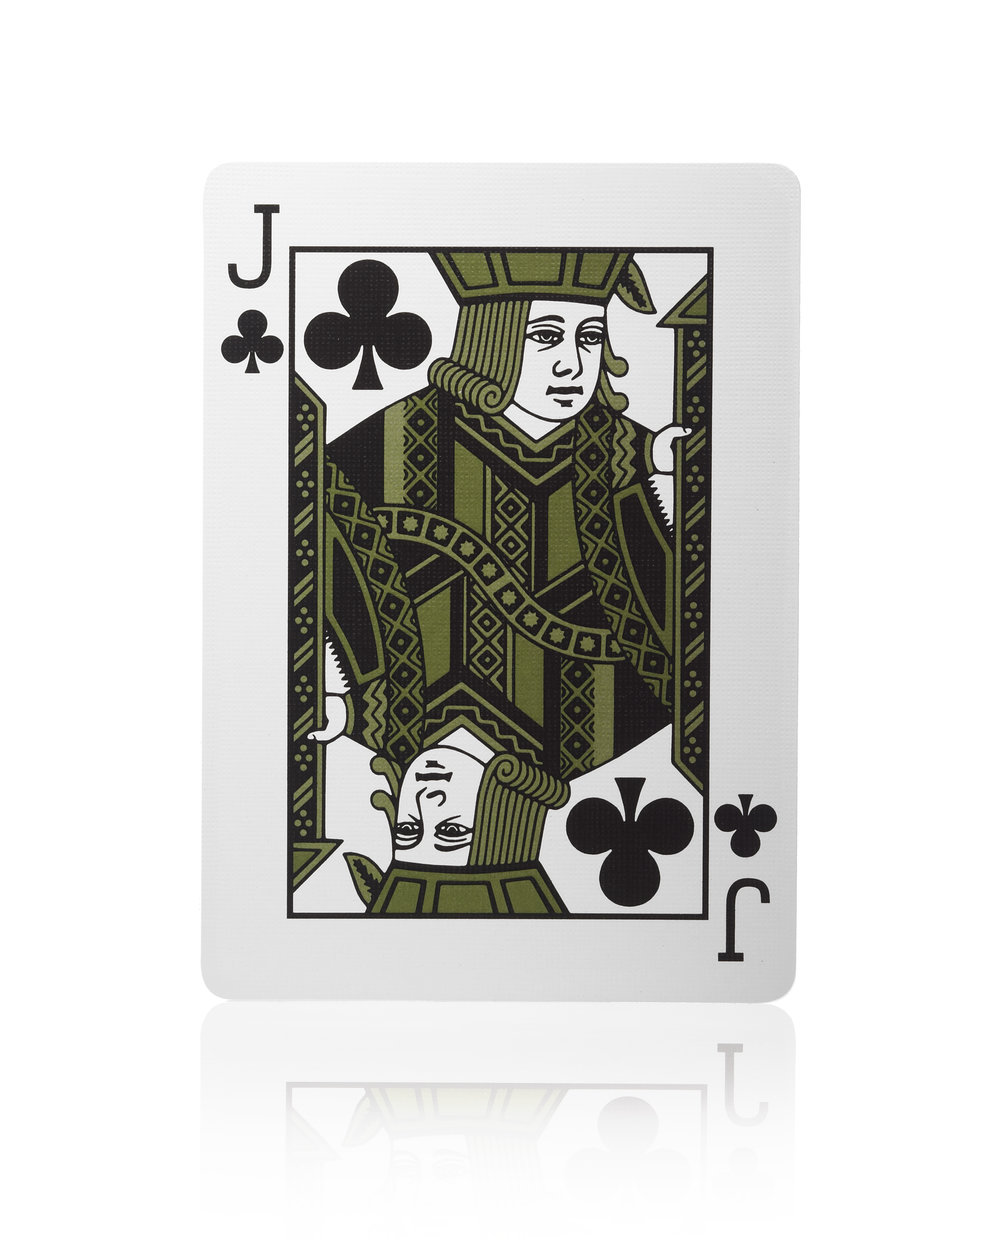 110330-PlayingCards-PlayingCards-009 copy.jpg